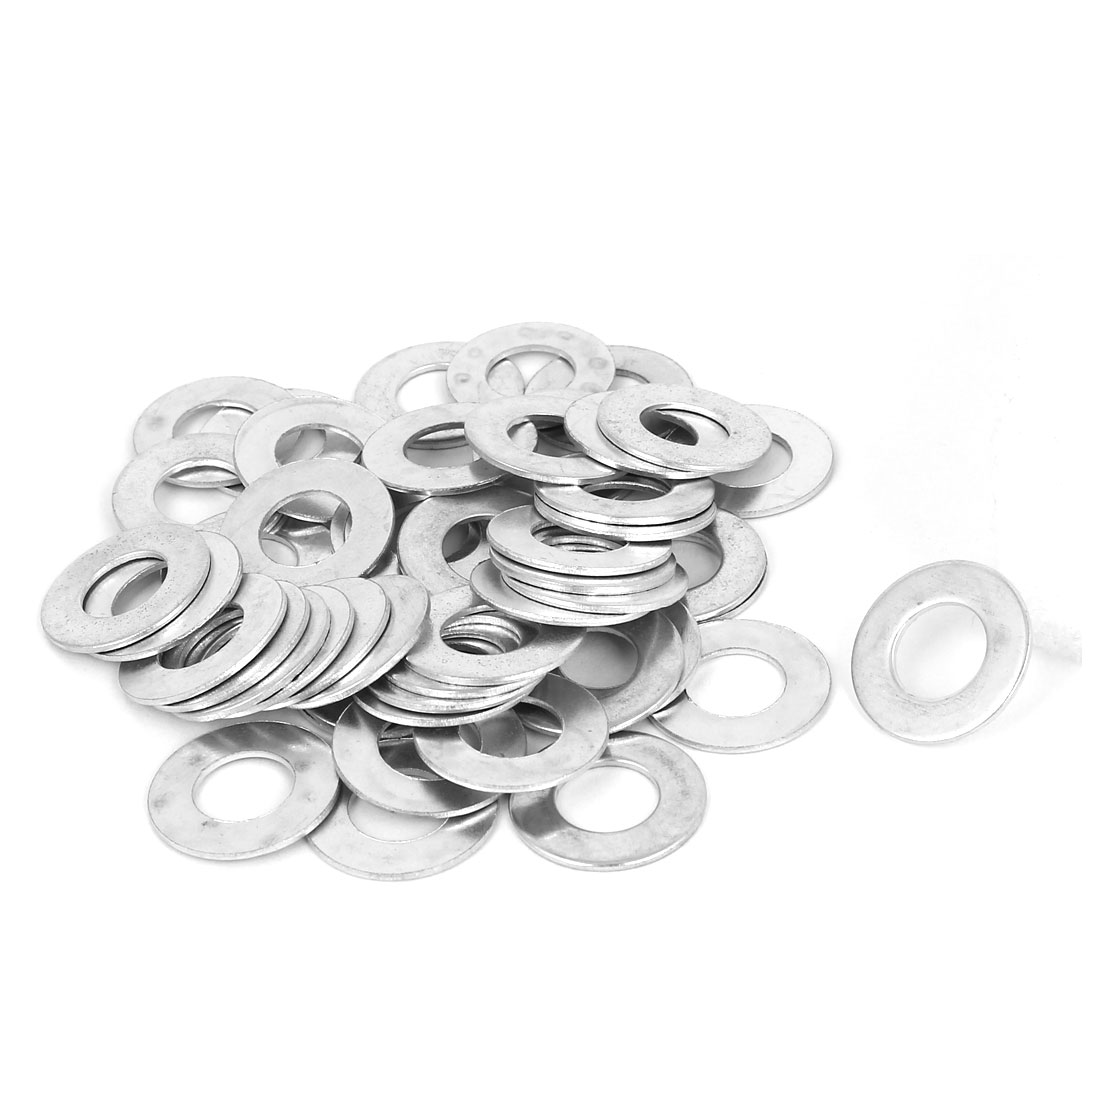 10mm x 20mm x 1mm Zinc Plated Flat Pads Washers Gaskets Fasteners GB97 50PCS